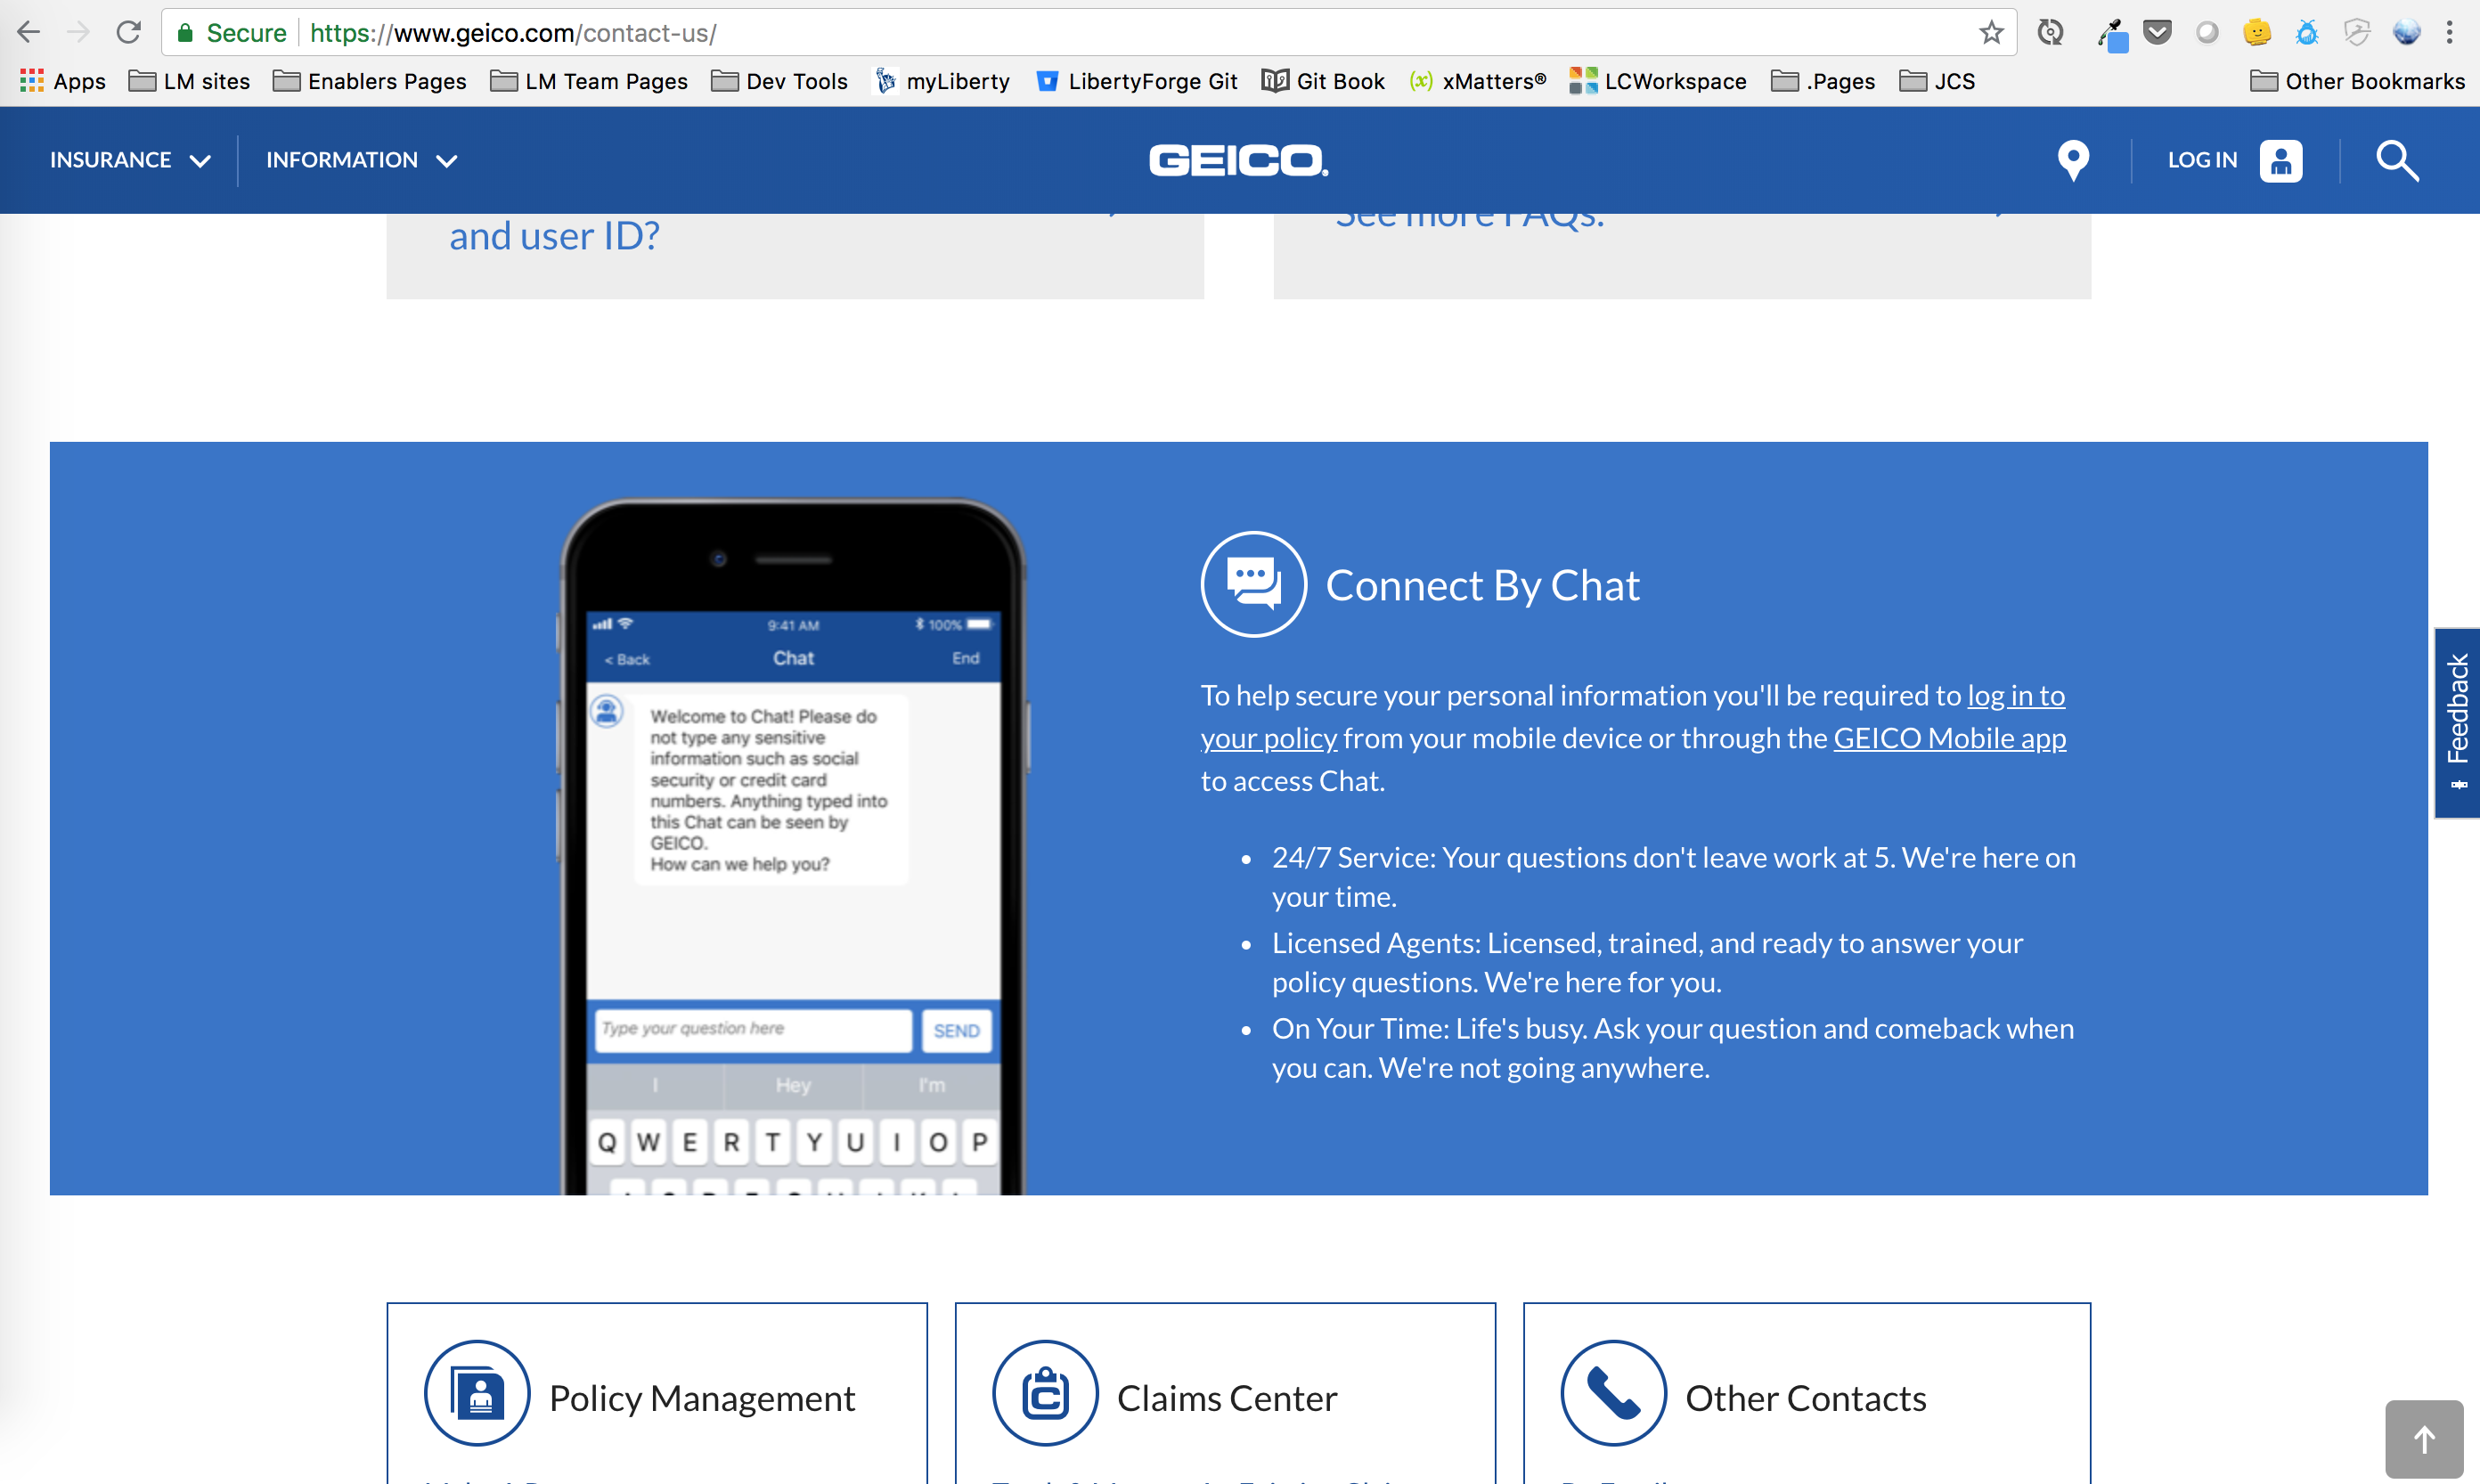 Contact Us Page Gives Info About The Chat Option That Exists Once